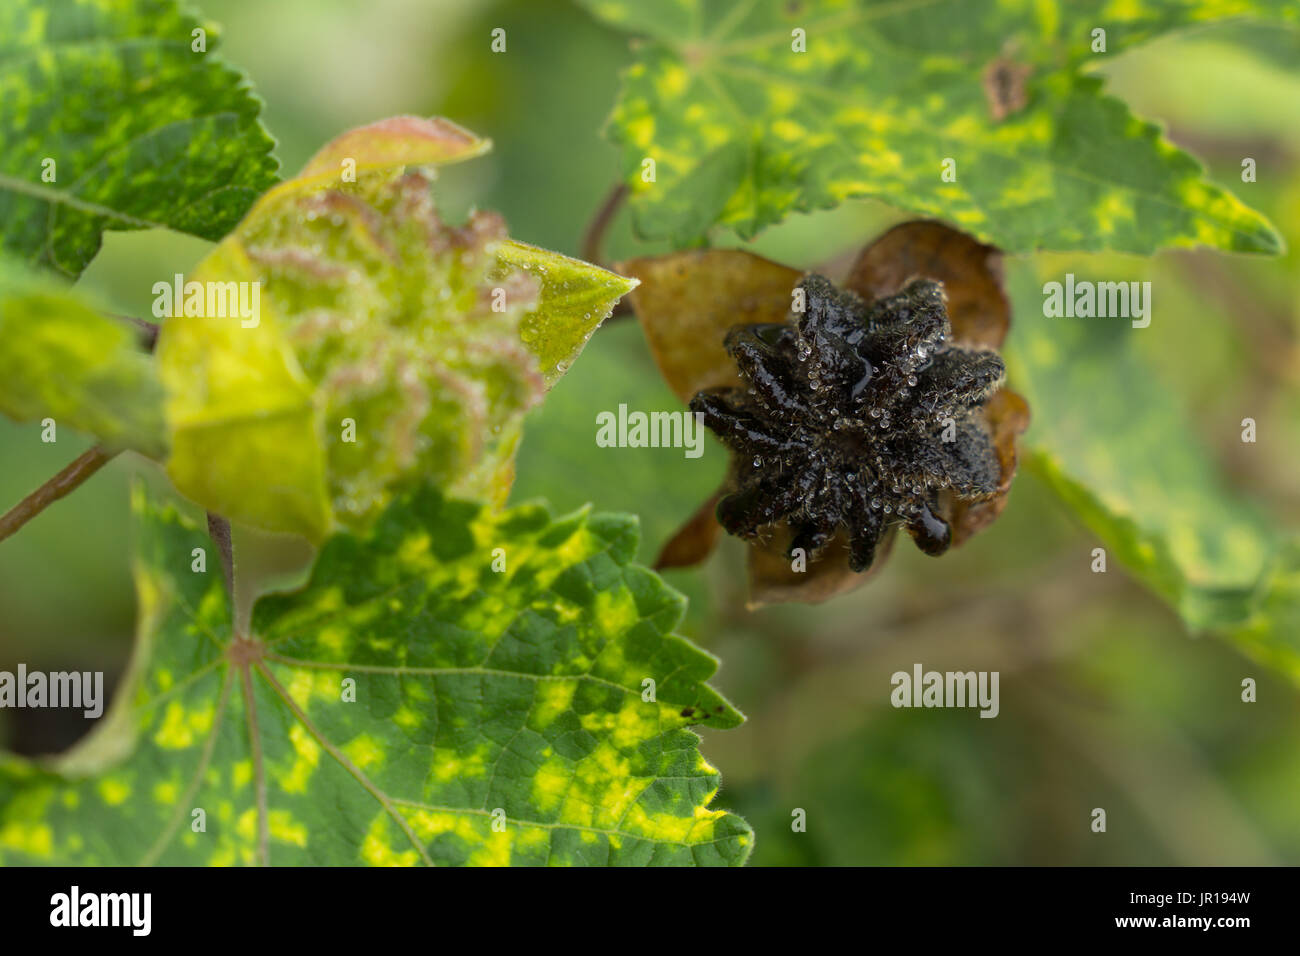 Early and late stage of Abutilon pictum seed pod development. Abutilon pictum 'Thompsonii', Chinese lantern, flowering Maple seed pod. - Stock Image